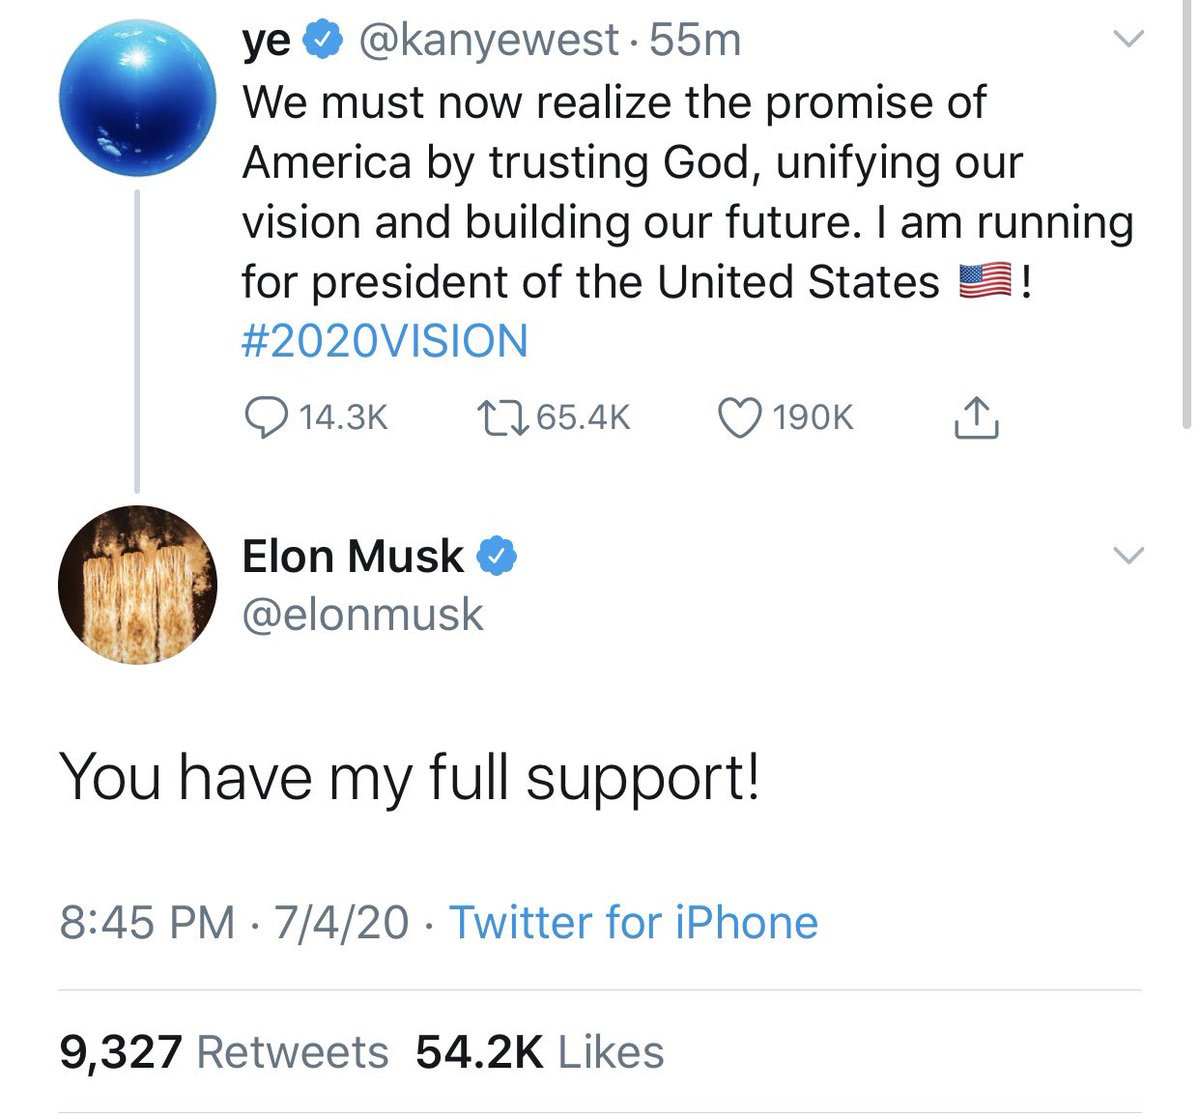 Elon Musk expresses his support of Kanye West